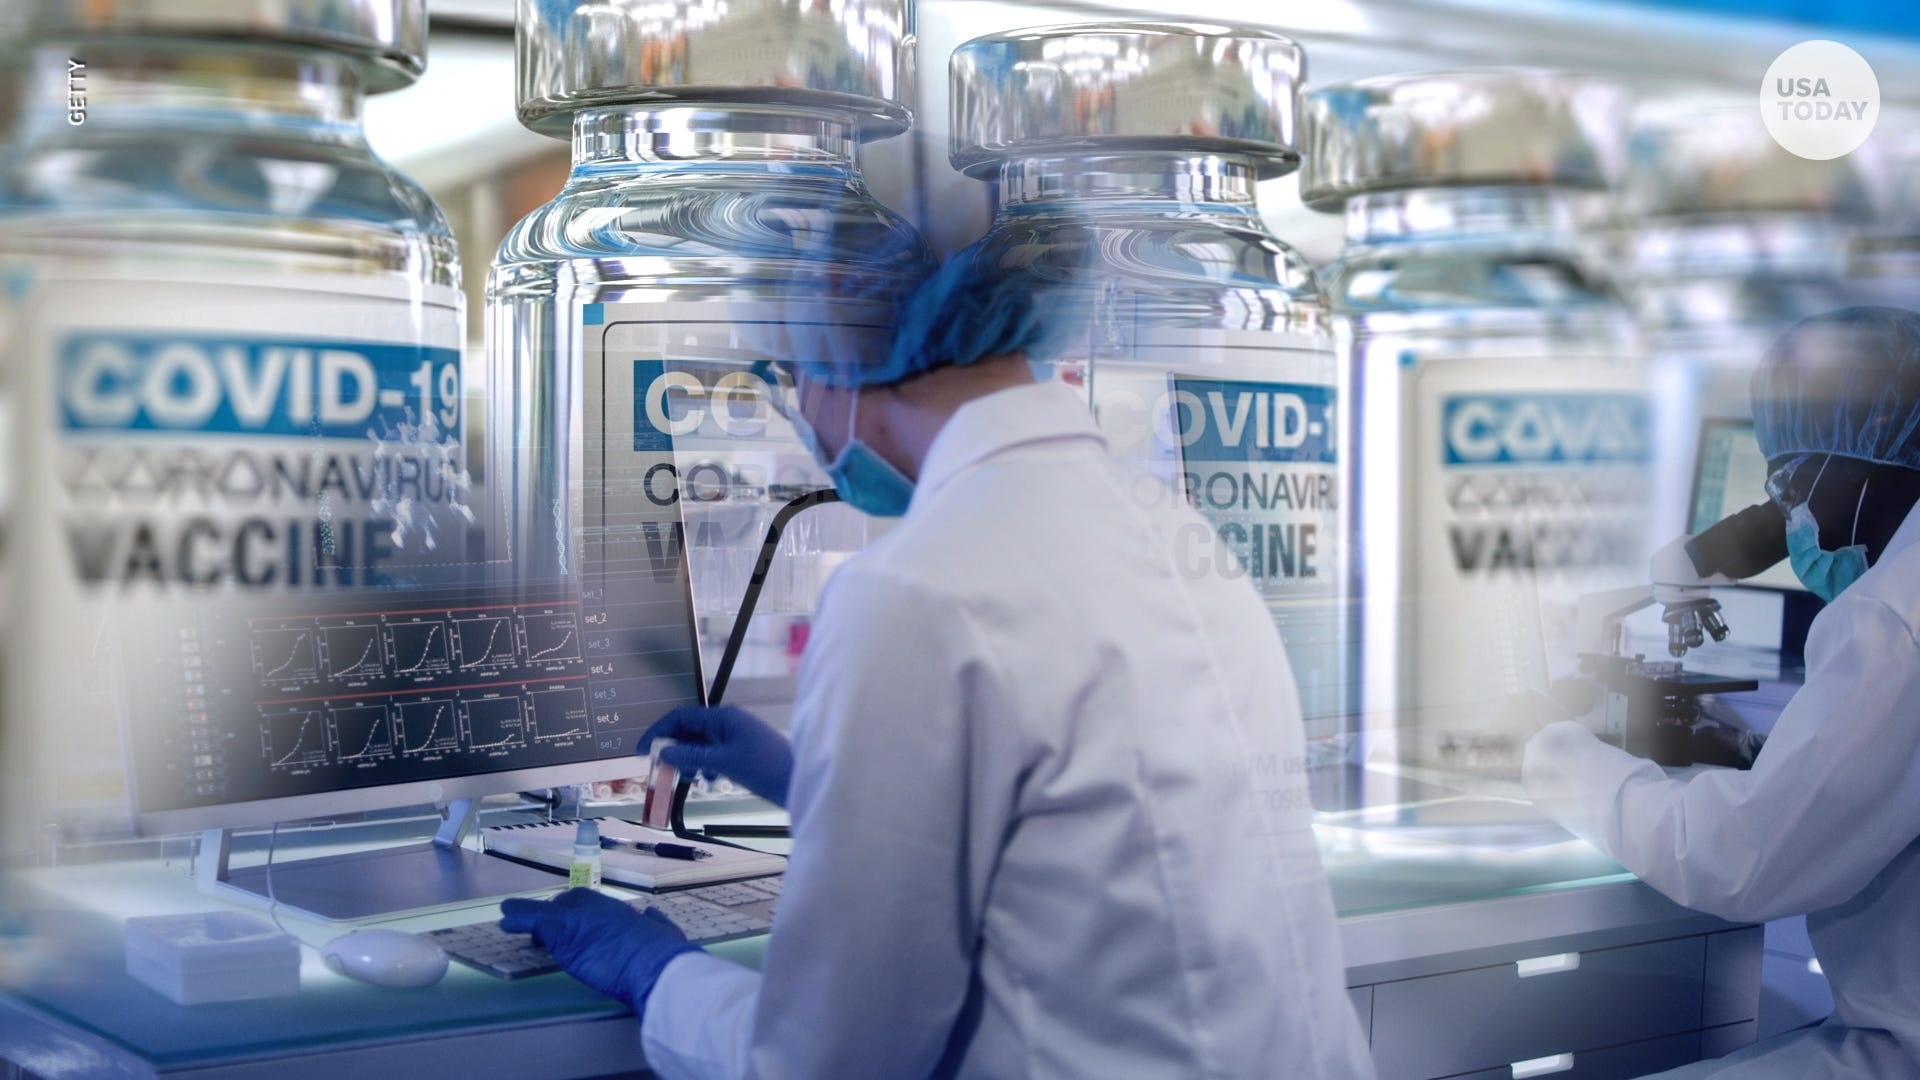 U.S. will pay $1 billion for 100 million doses of Johnson & Johnson's COVID-19 vaccine candidate